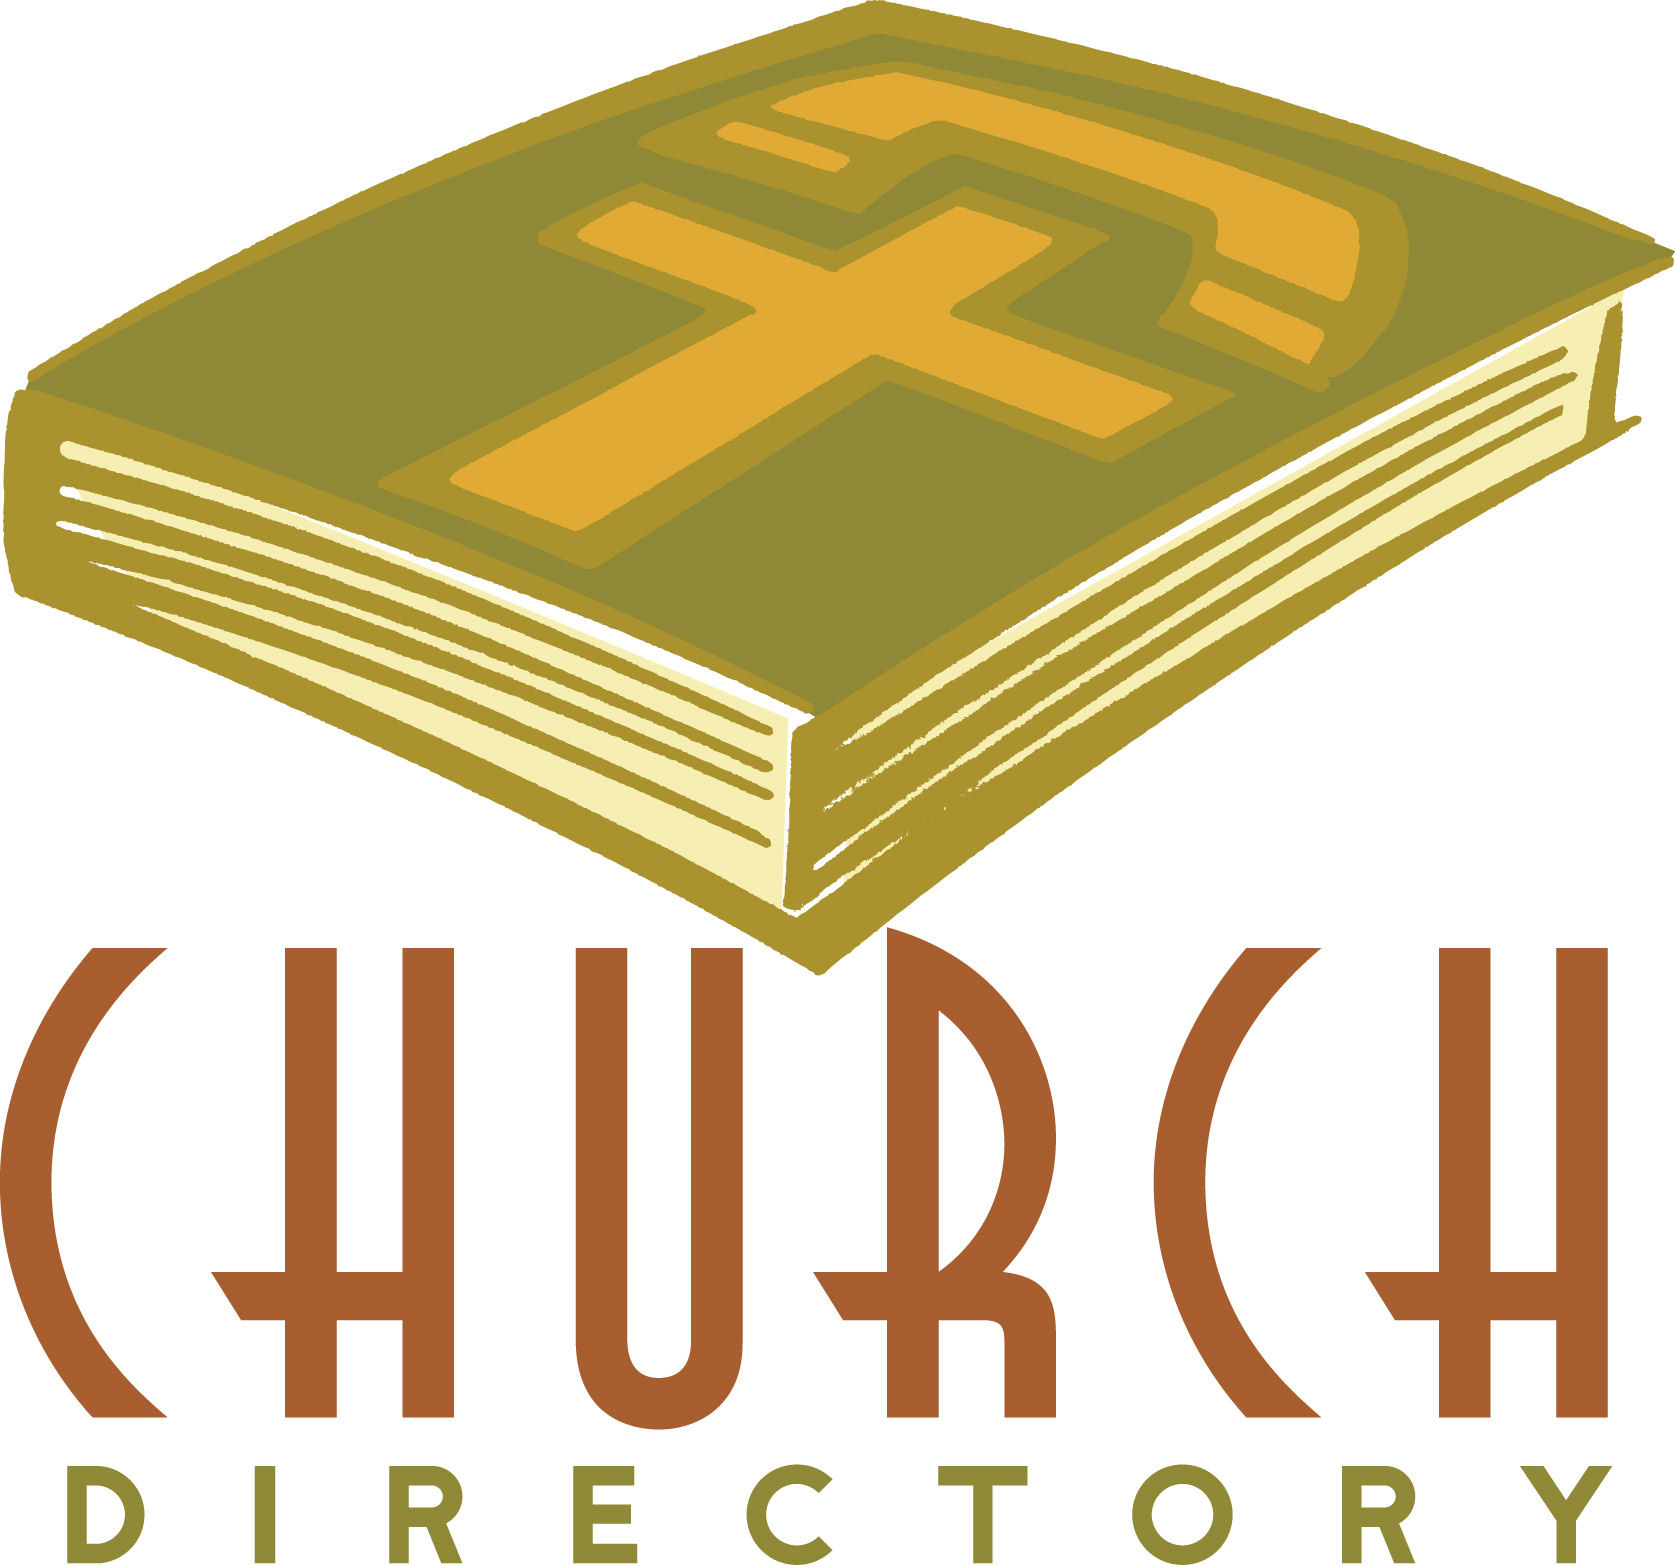 Telephone Directory Clip Art Church.